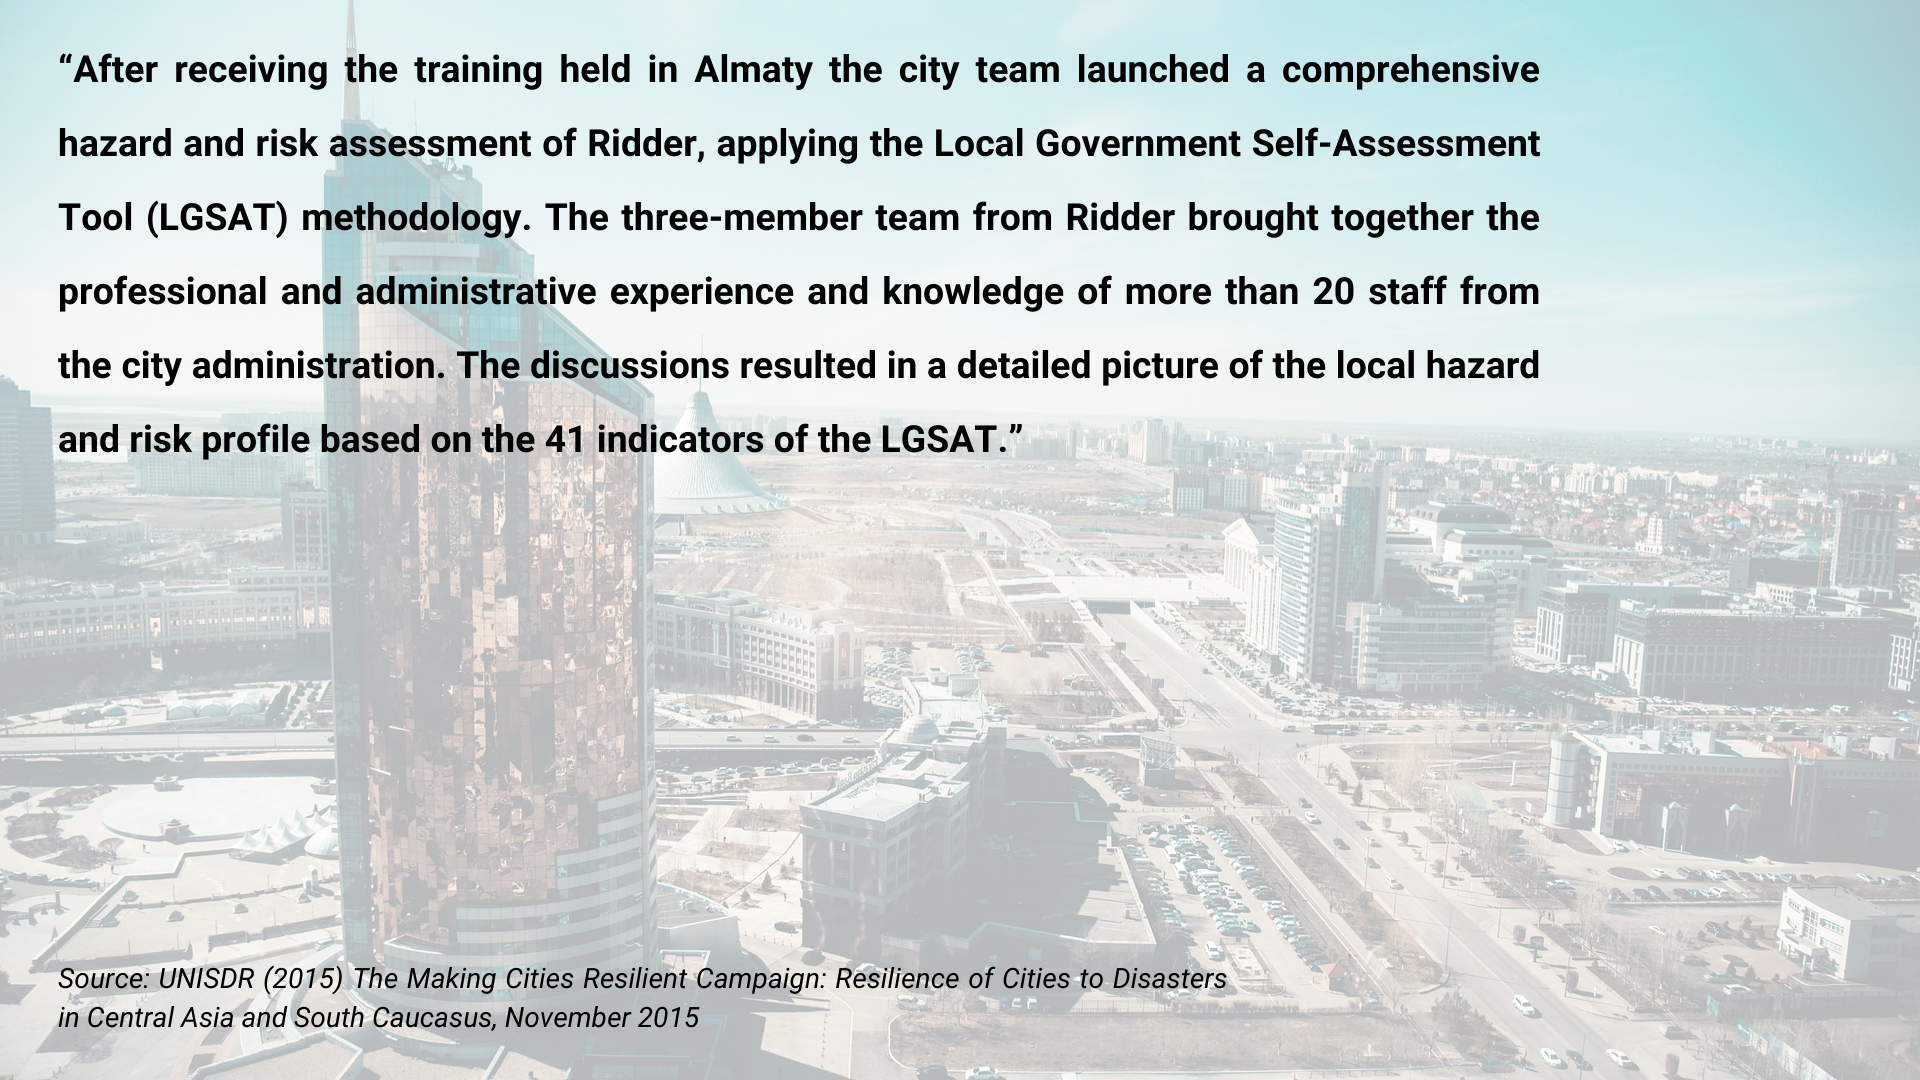 After receiving the training held in Almaty the city team launched a comprehensive hazard and risk assessment of Ridder, applying the Local Government Self-Assessment Tool (LGSAT) methodology.